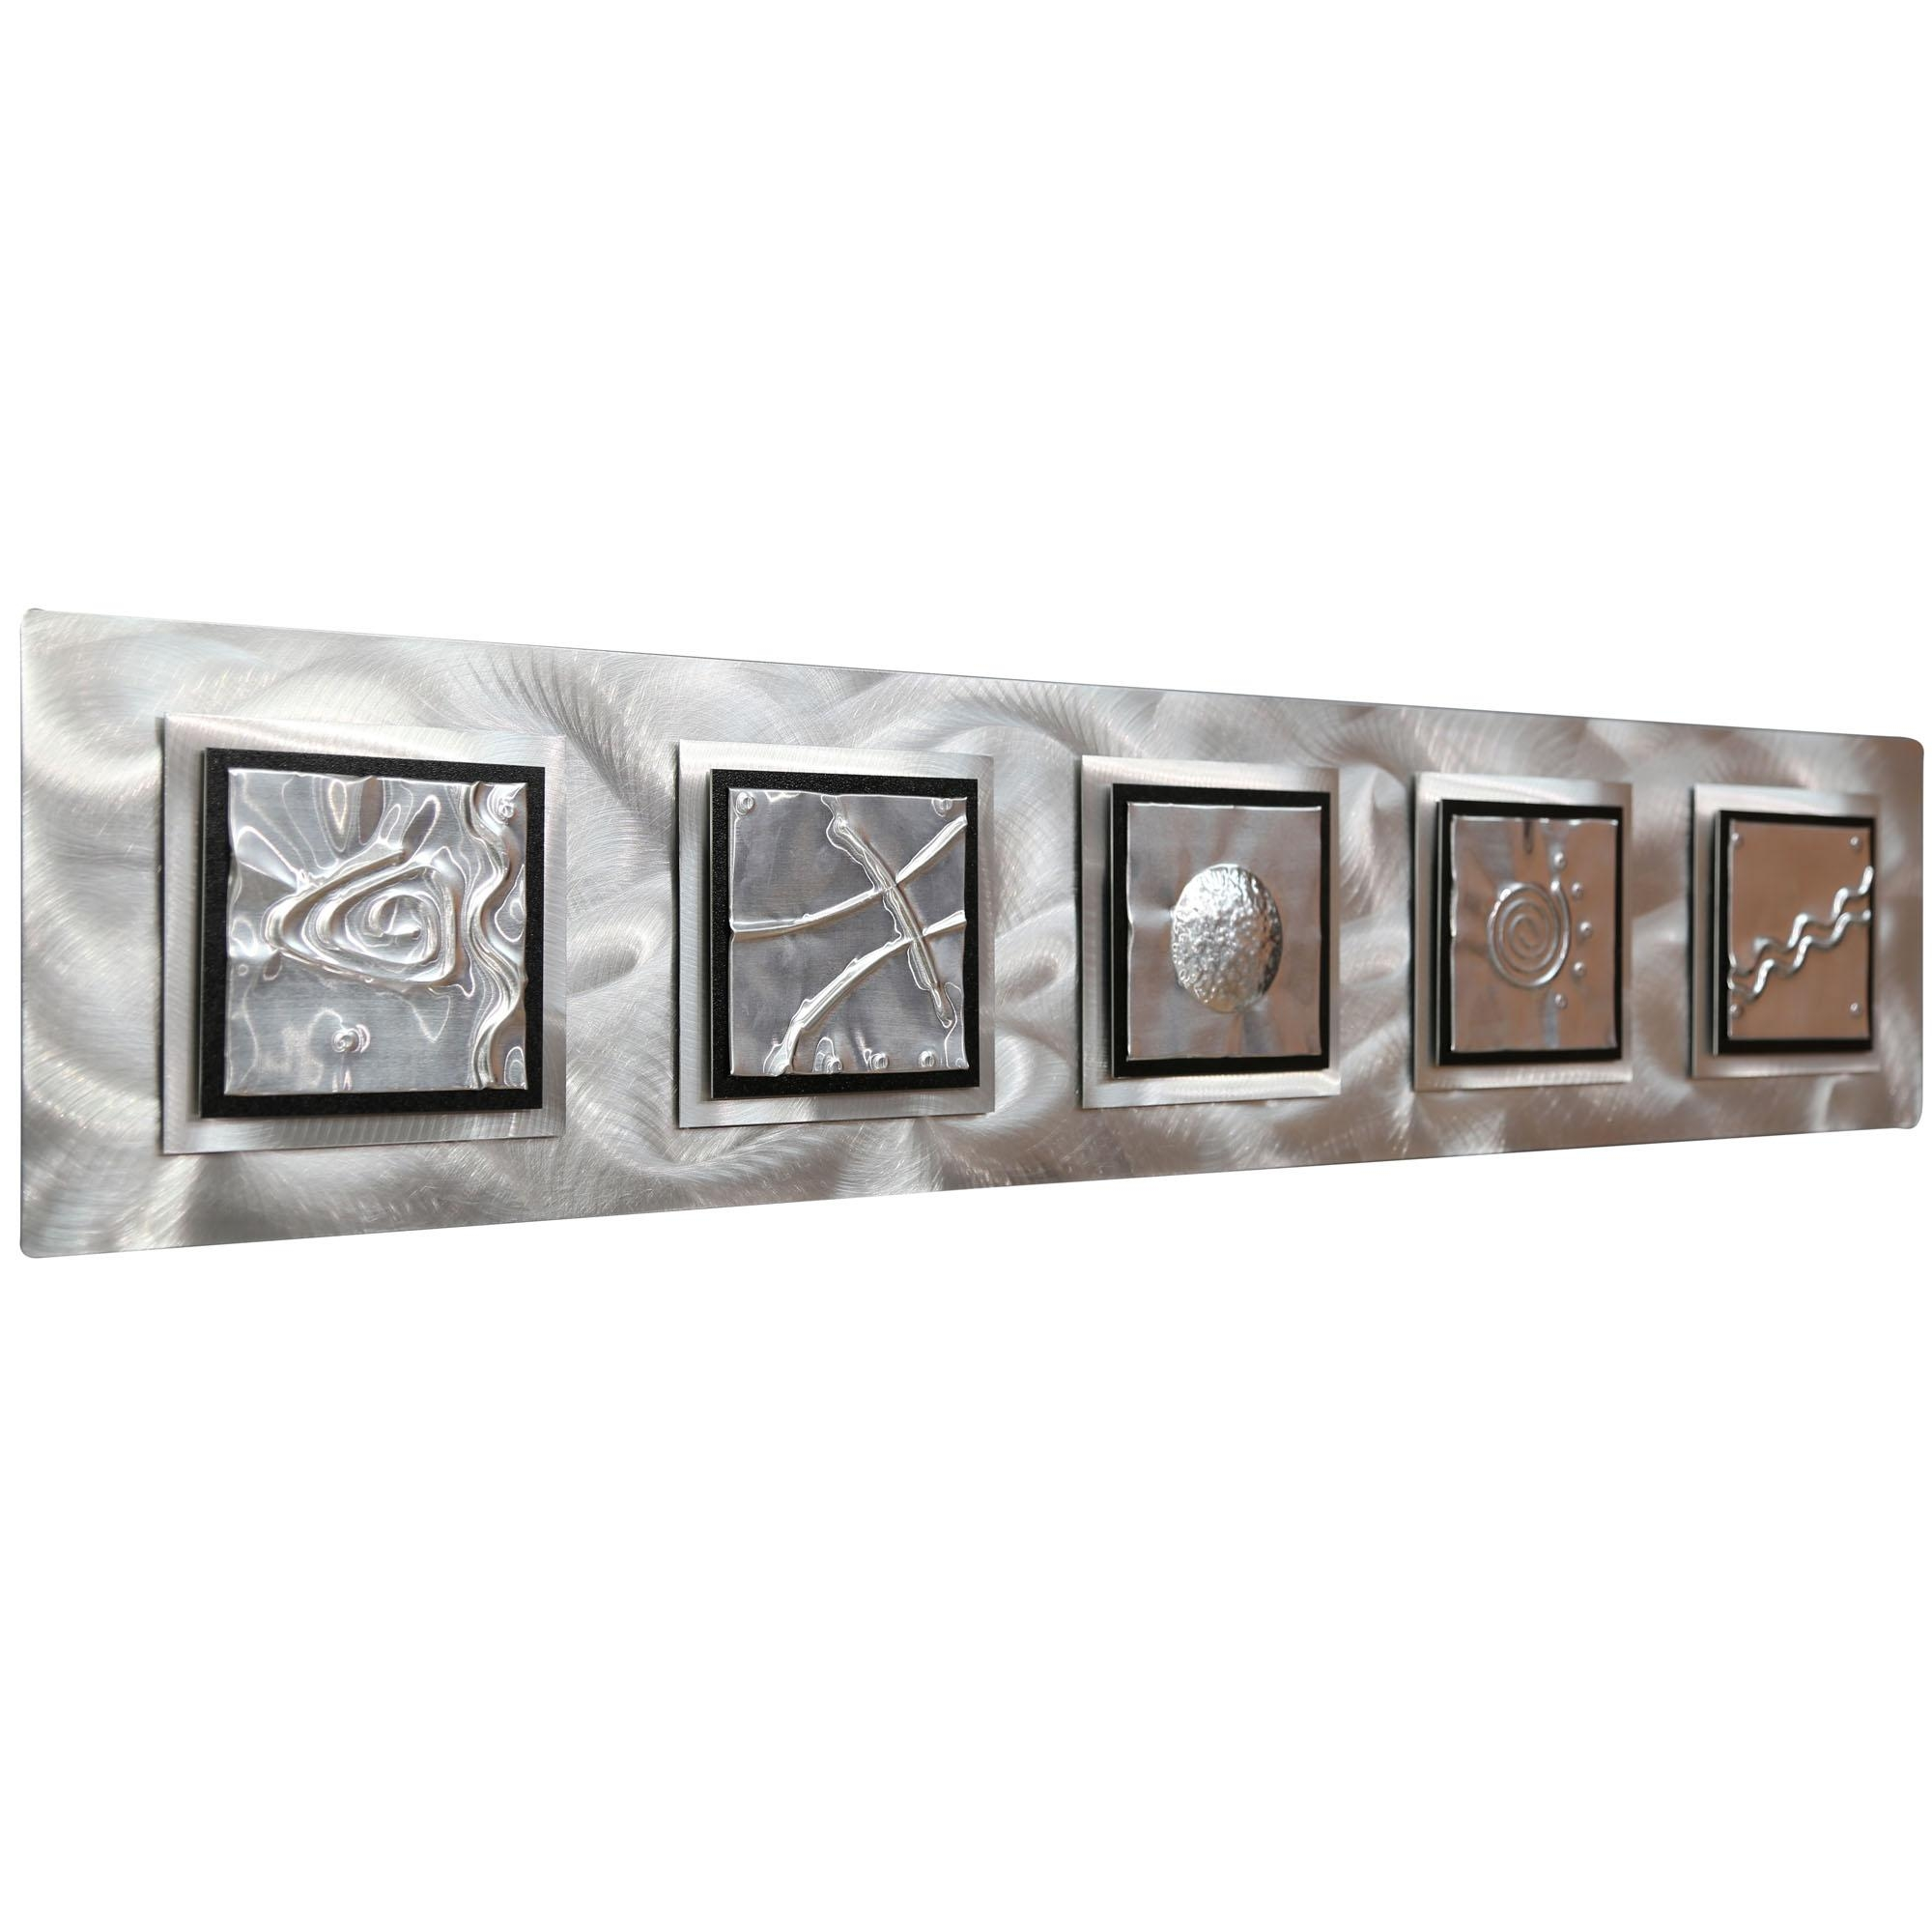 5 Elements - Silver/black Zen Metal Wall Art Accentjon Allen within Elements Wall Art